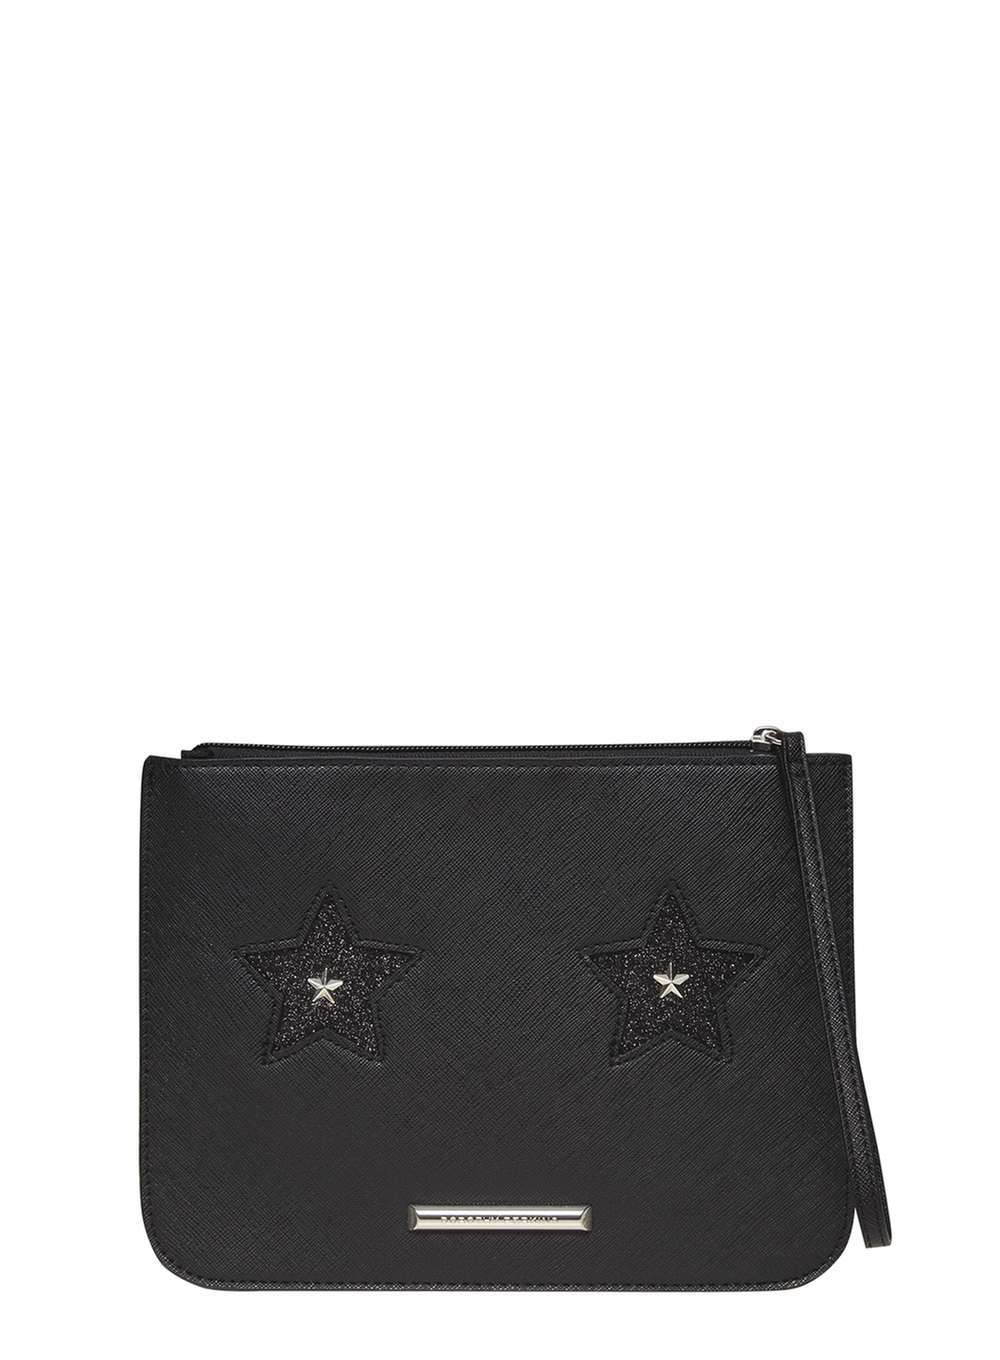 Womens Star Eye Clutch Bag Black - predominant colour: black; occasions: casual, creative work; type of pattern: standard; style: clutch; length: hand carry; size: small; material: leather; pattern: plain; finish: plain; season: a/w 2016